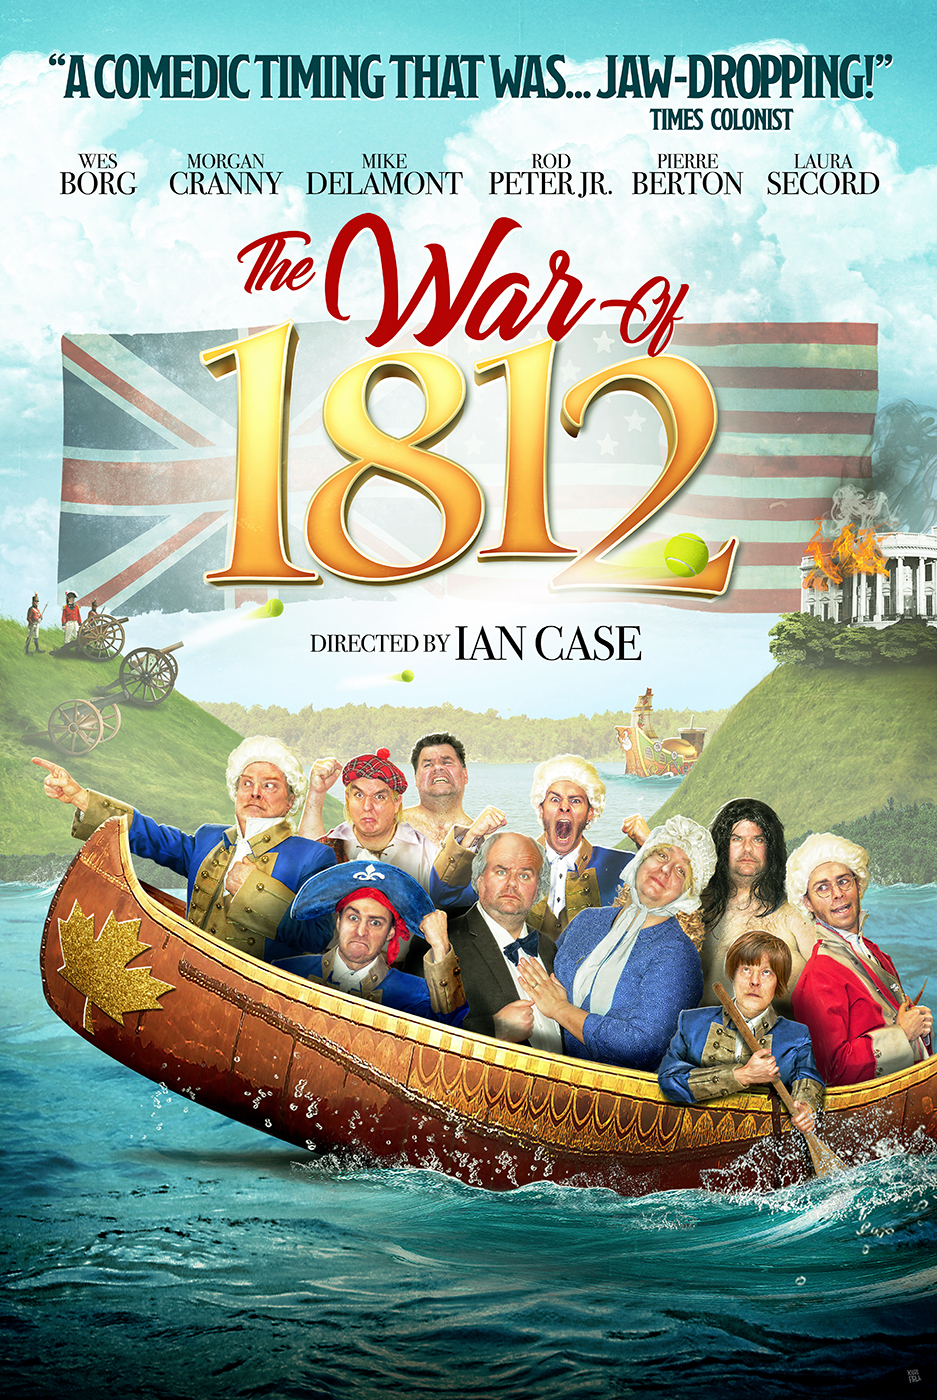 "War of 1812 - ★★★★★ ""FUNNY & FRESH! TEARS OF LAUGHTER!"